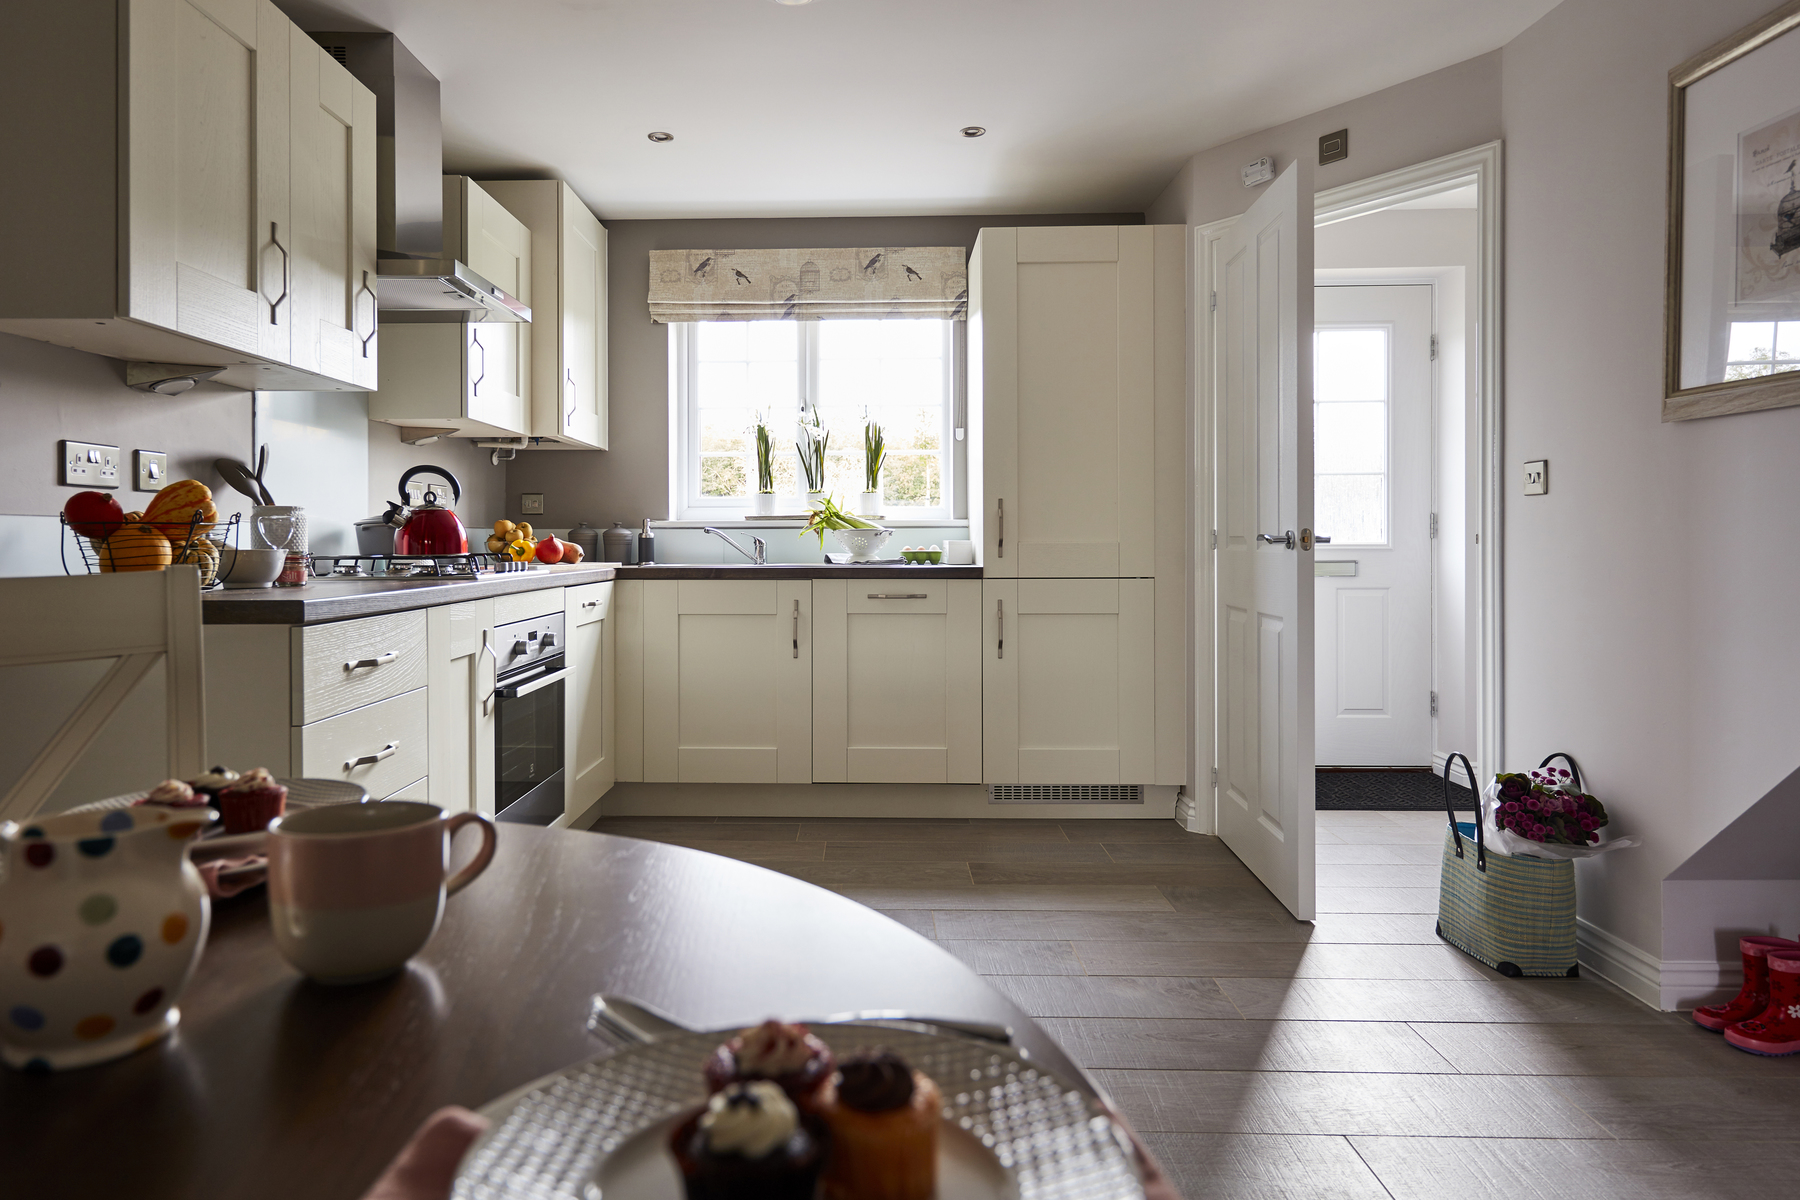 TW Mids_Lilley Meadow_Southam_PB35 G_Alton G_Kitchen 1